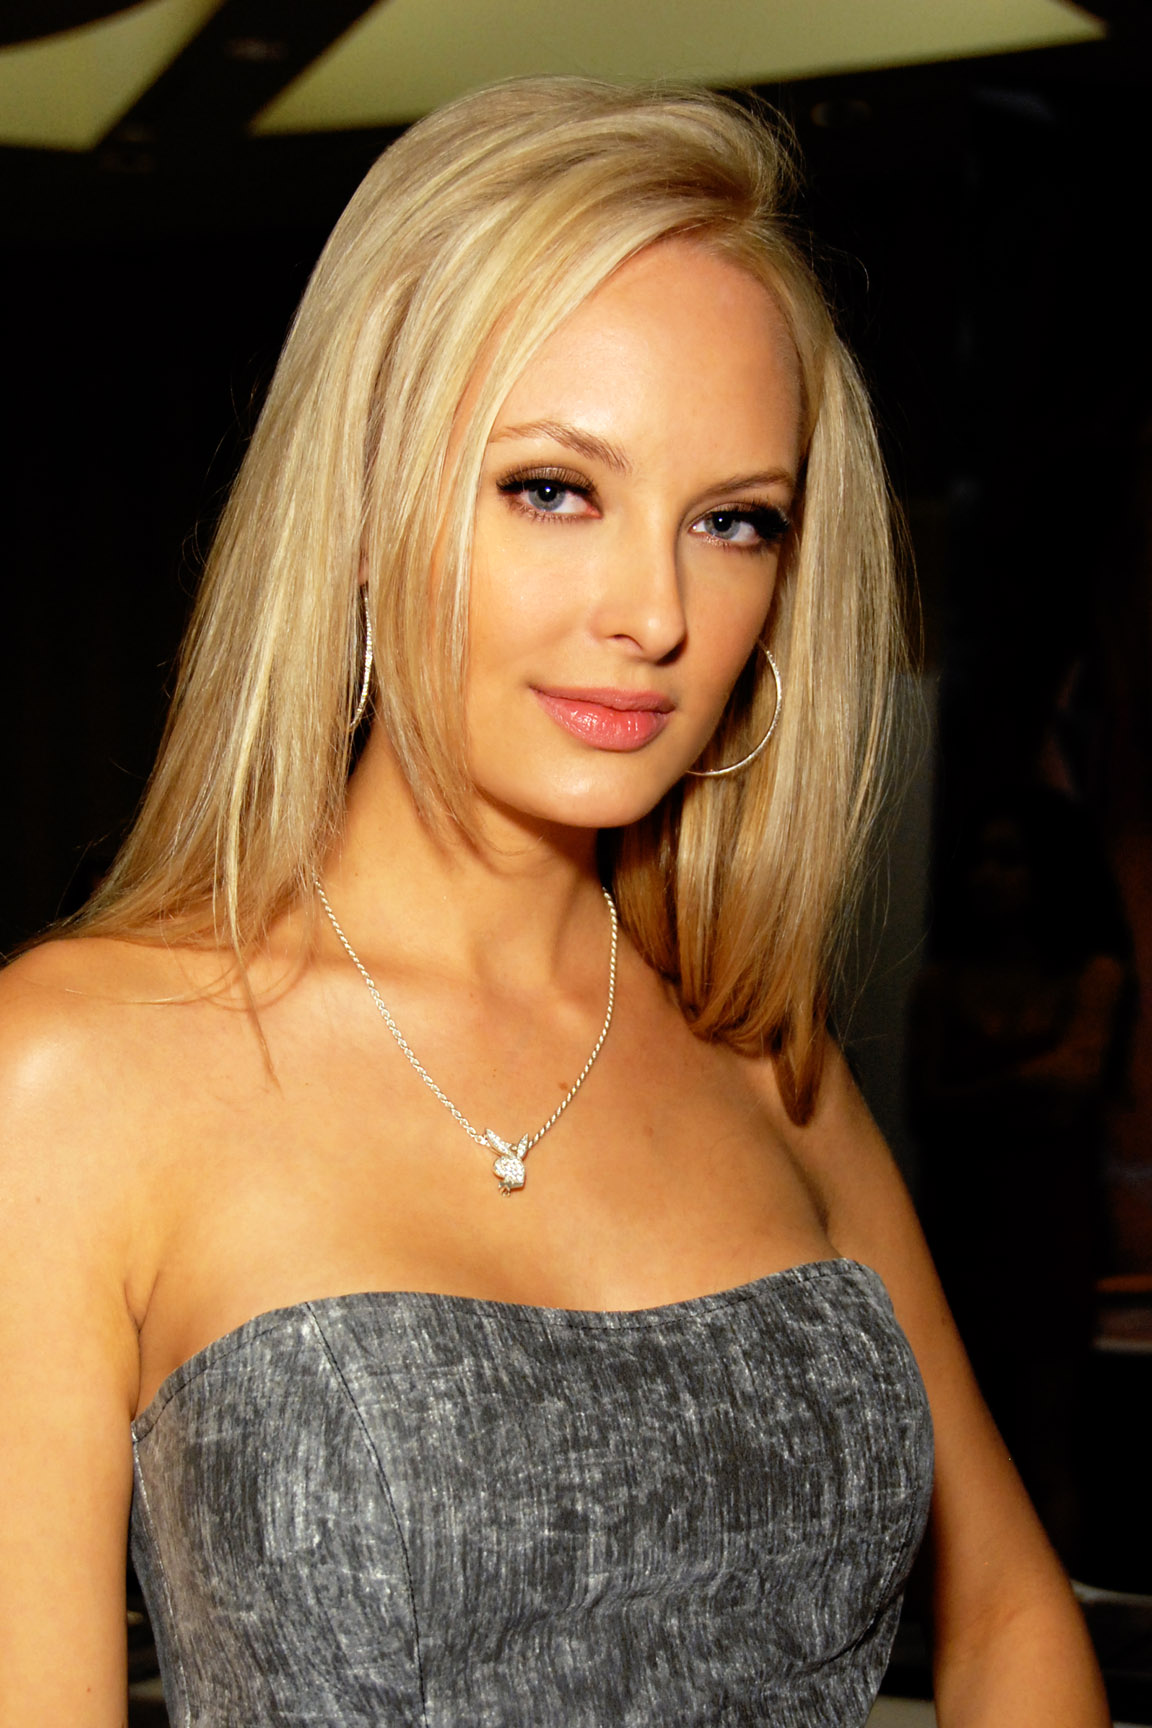 File:Shera Bechard 2010.jpg - Wikipedia